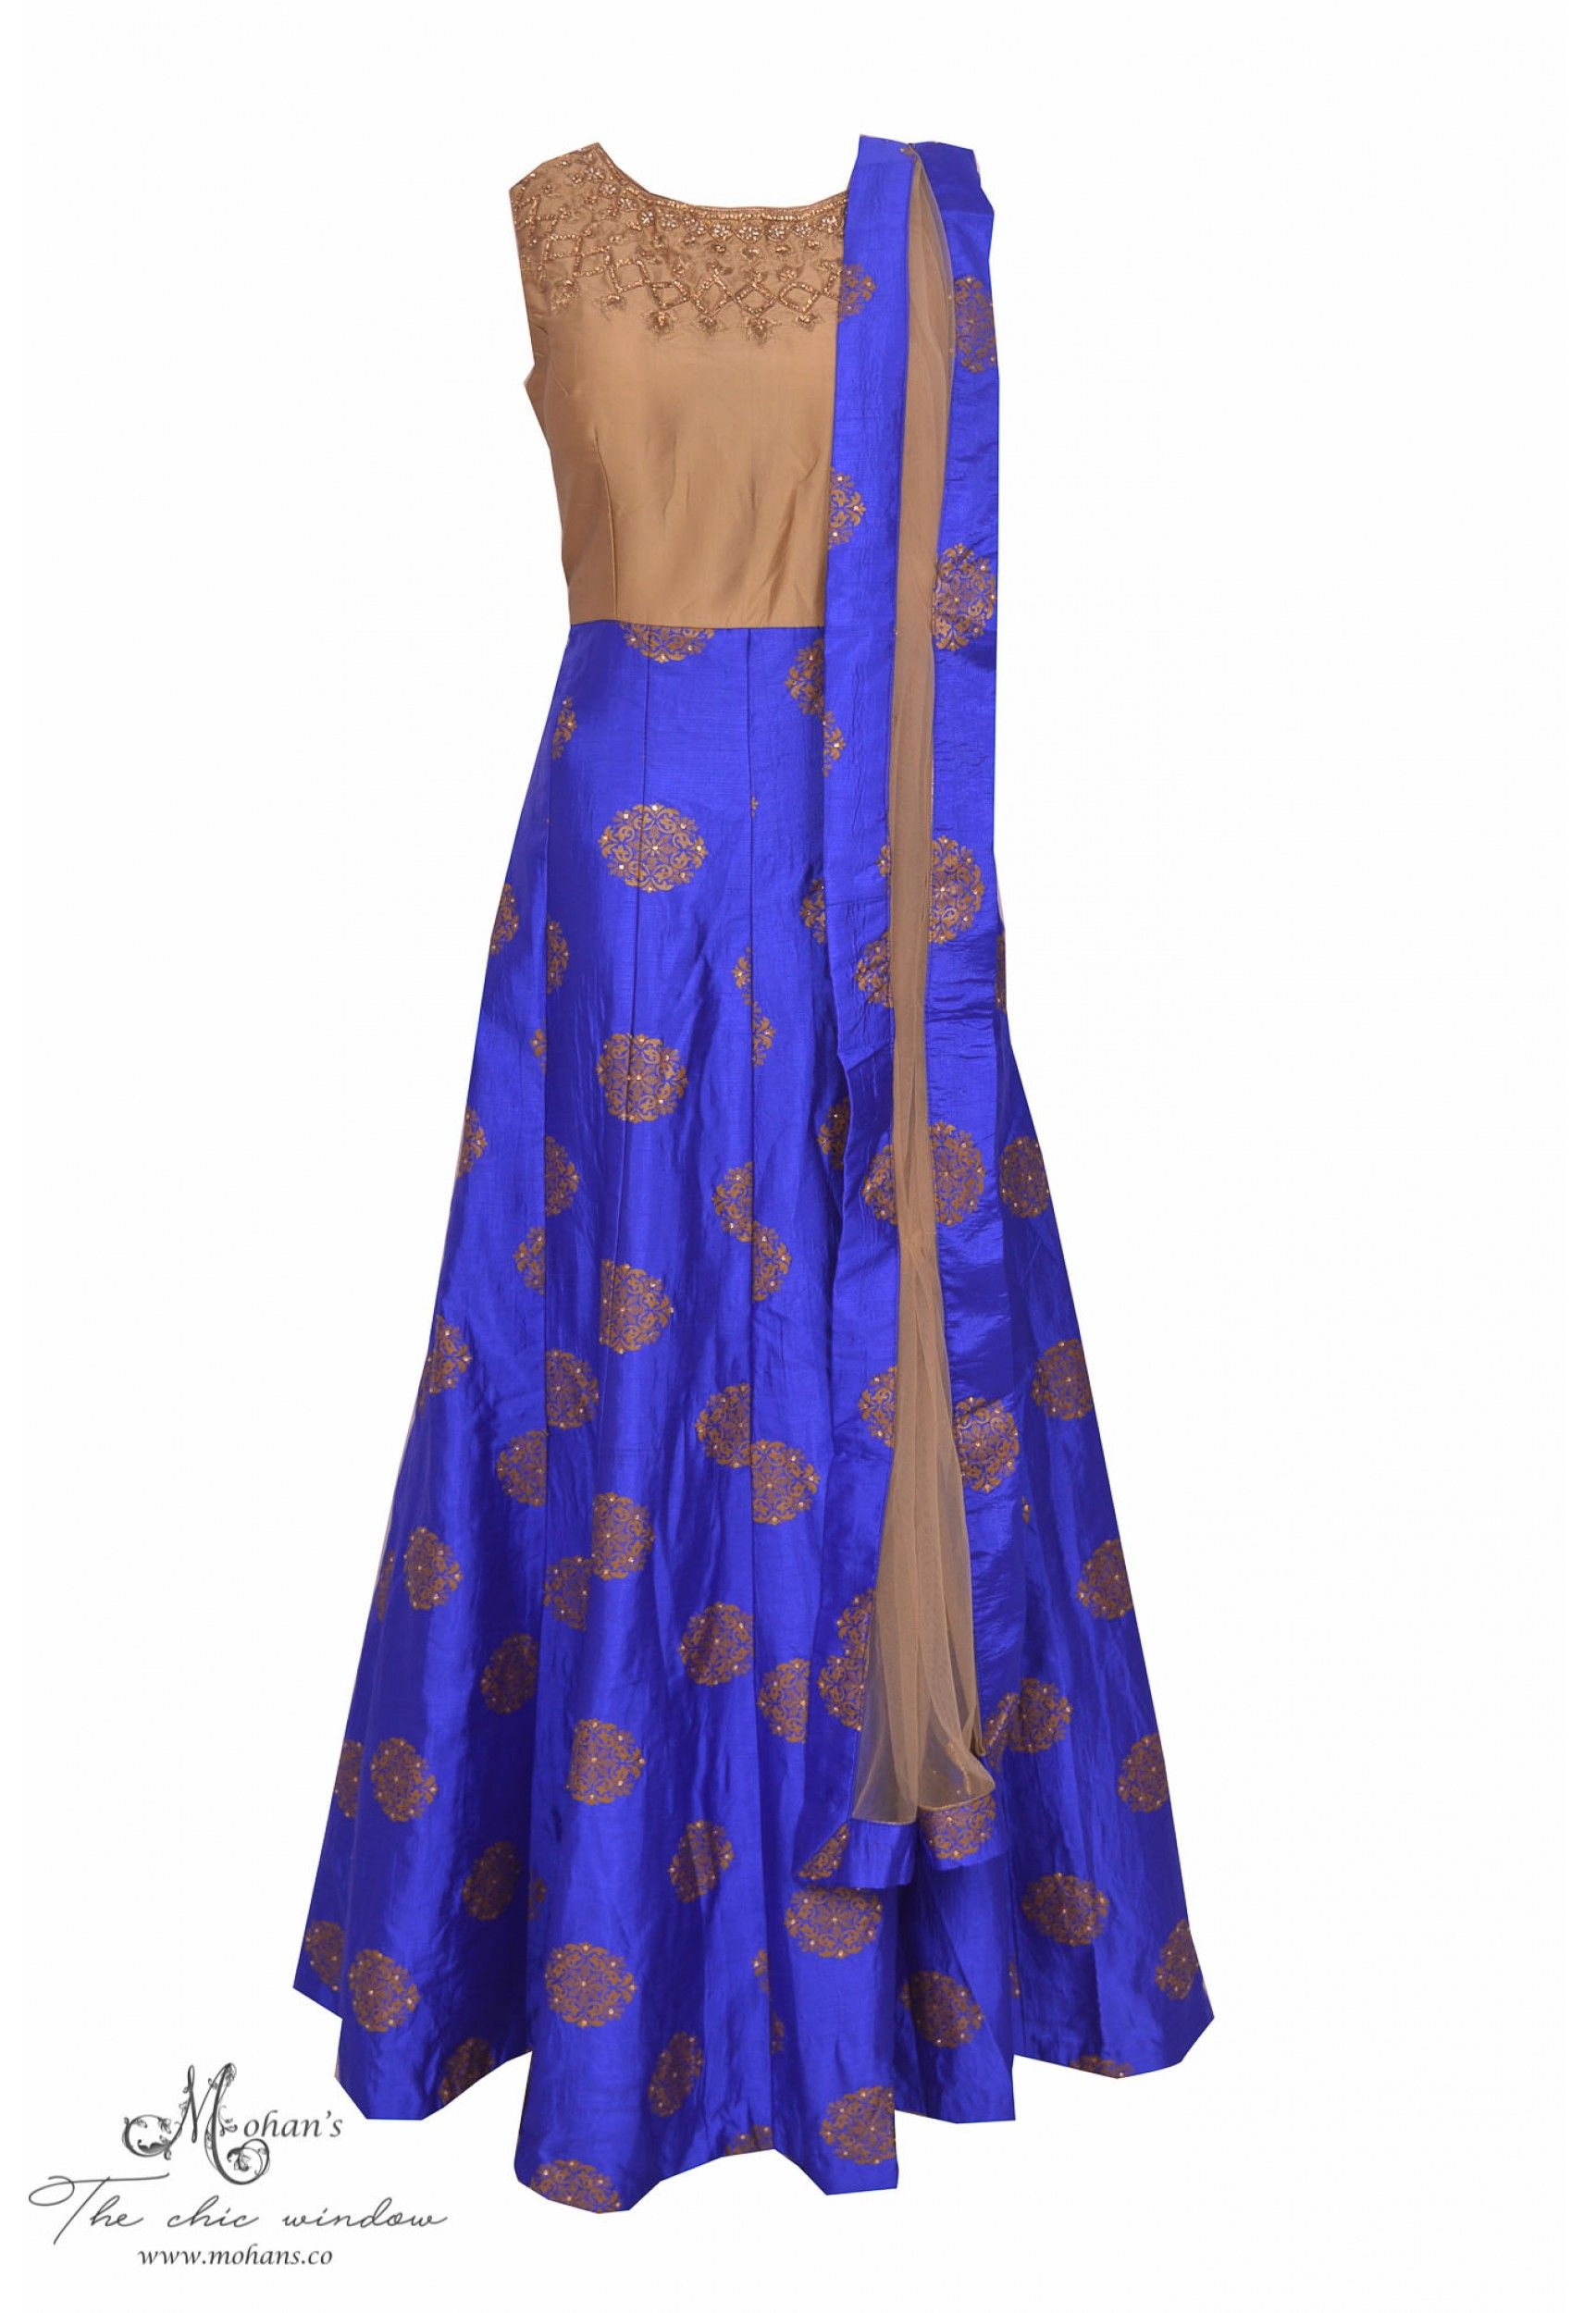 Pretty royal blue and mouse brown frock suit with elegant embroidery on neckline